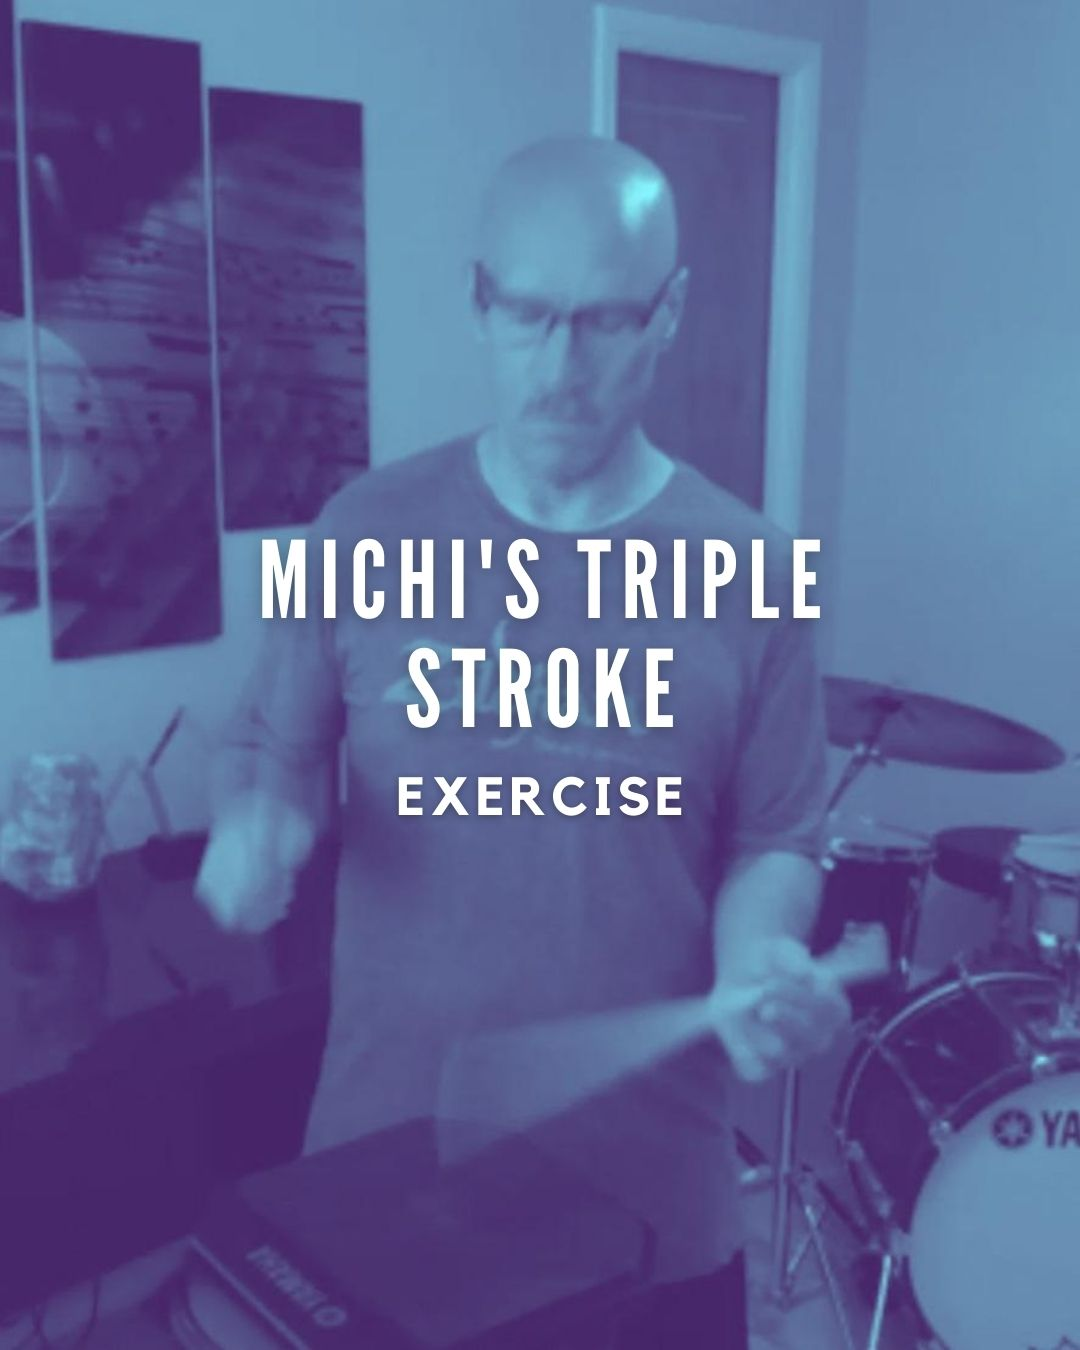 Michi's Triple Stroke